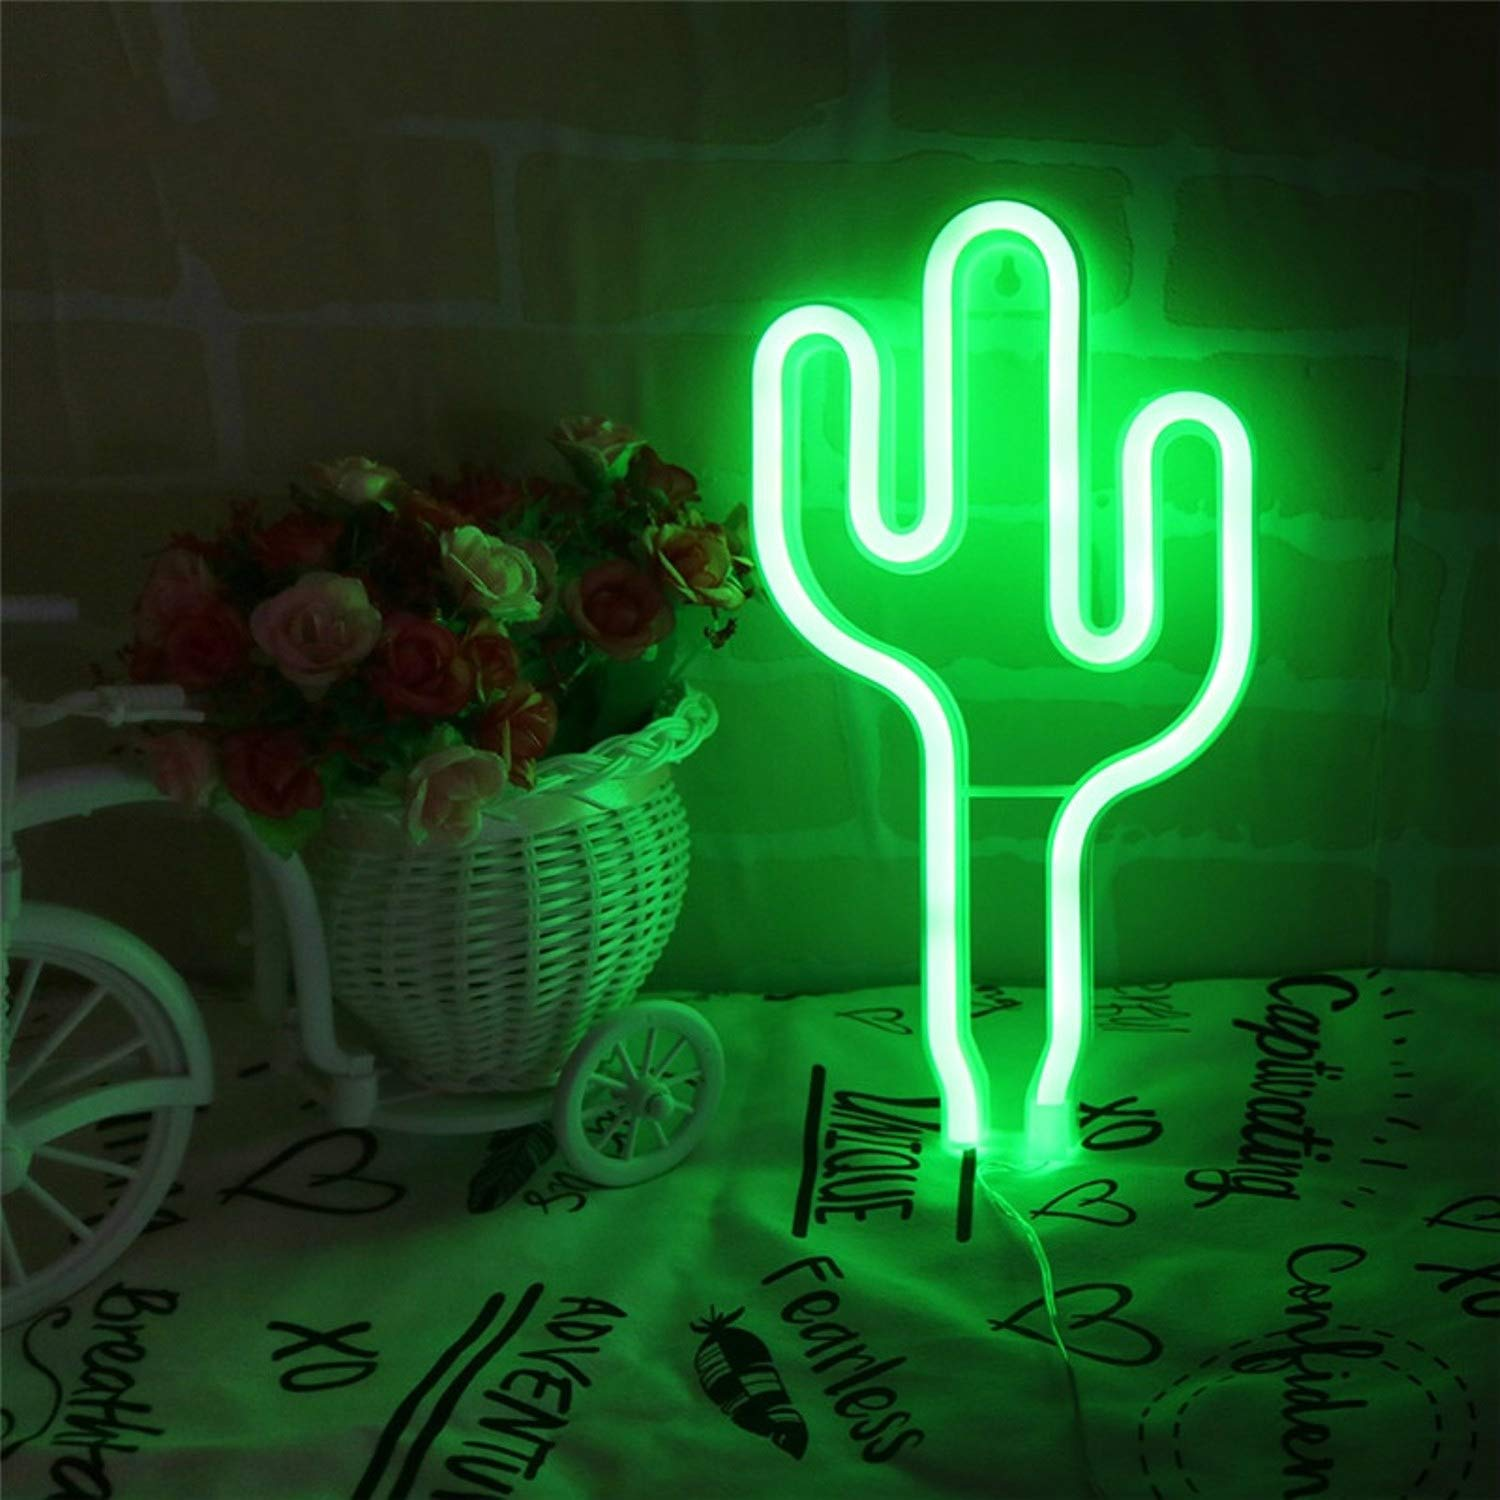 Neon Signs LED Neon Light Night Lamp House Decoration Room Lighting Kids Present Children Christmas Gift Party Cactus Green